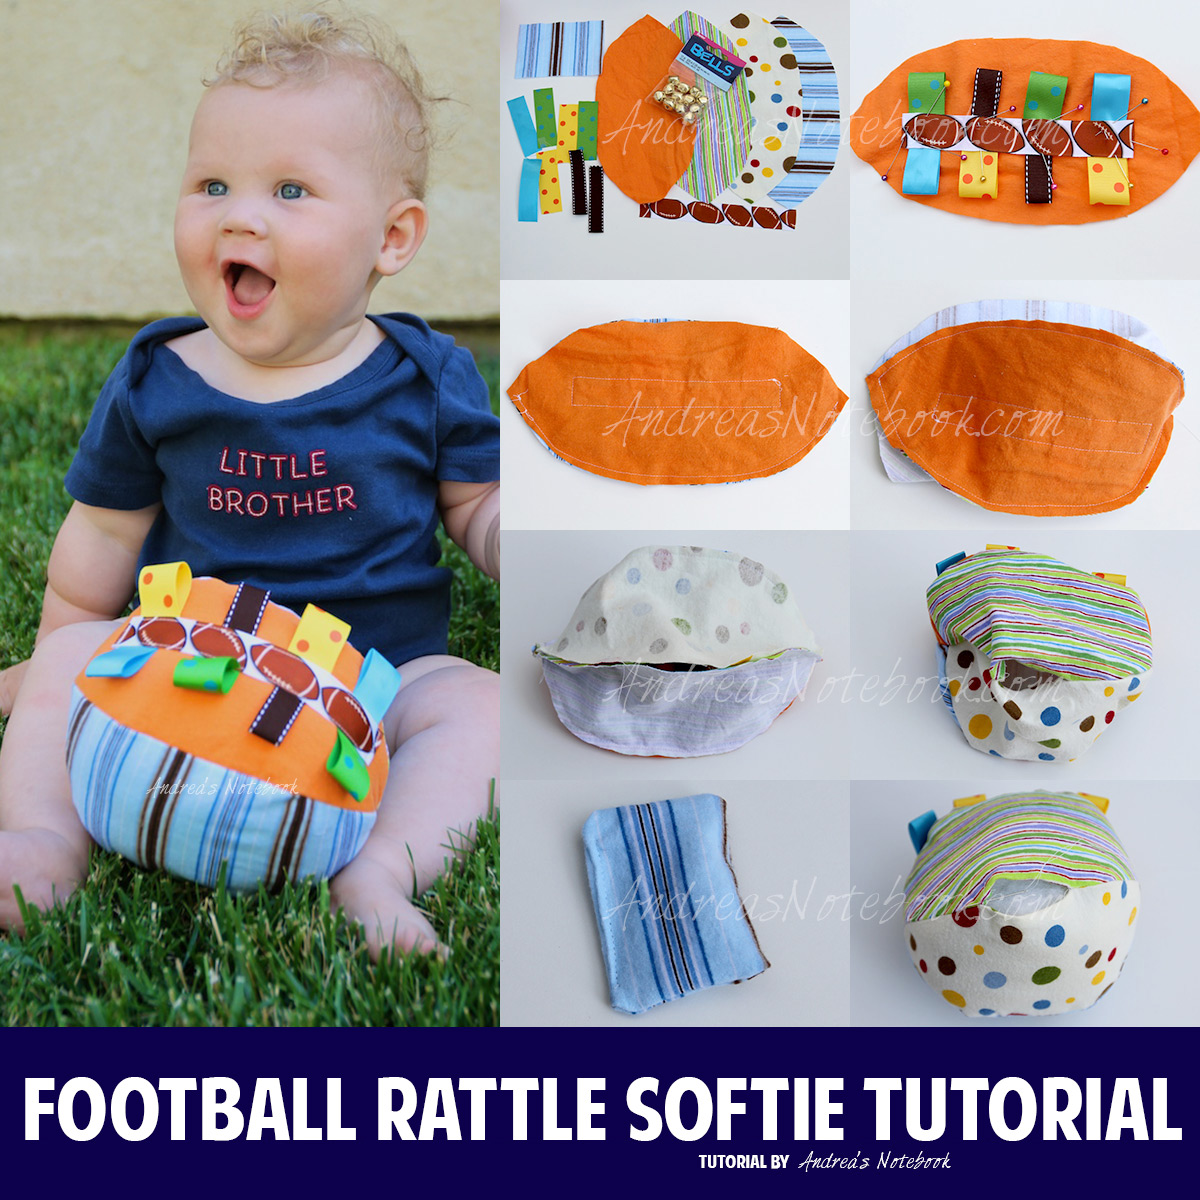 Cute football rattle softie tutorial